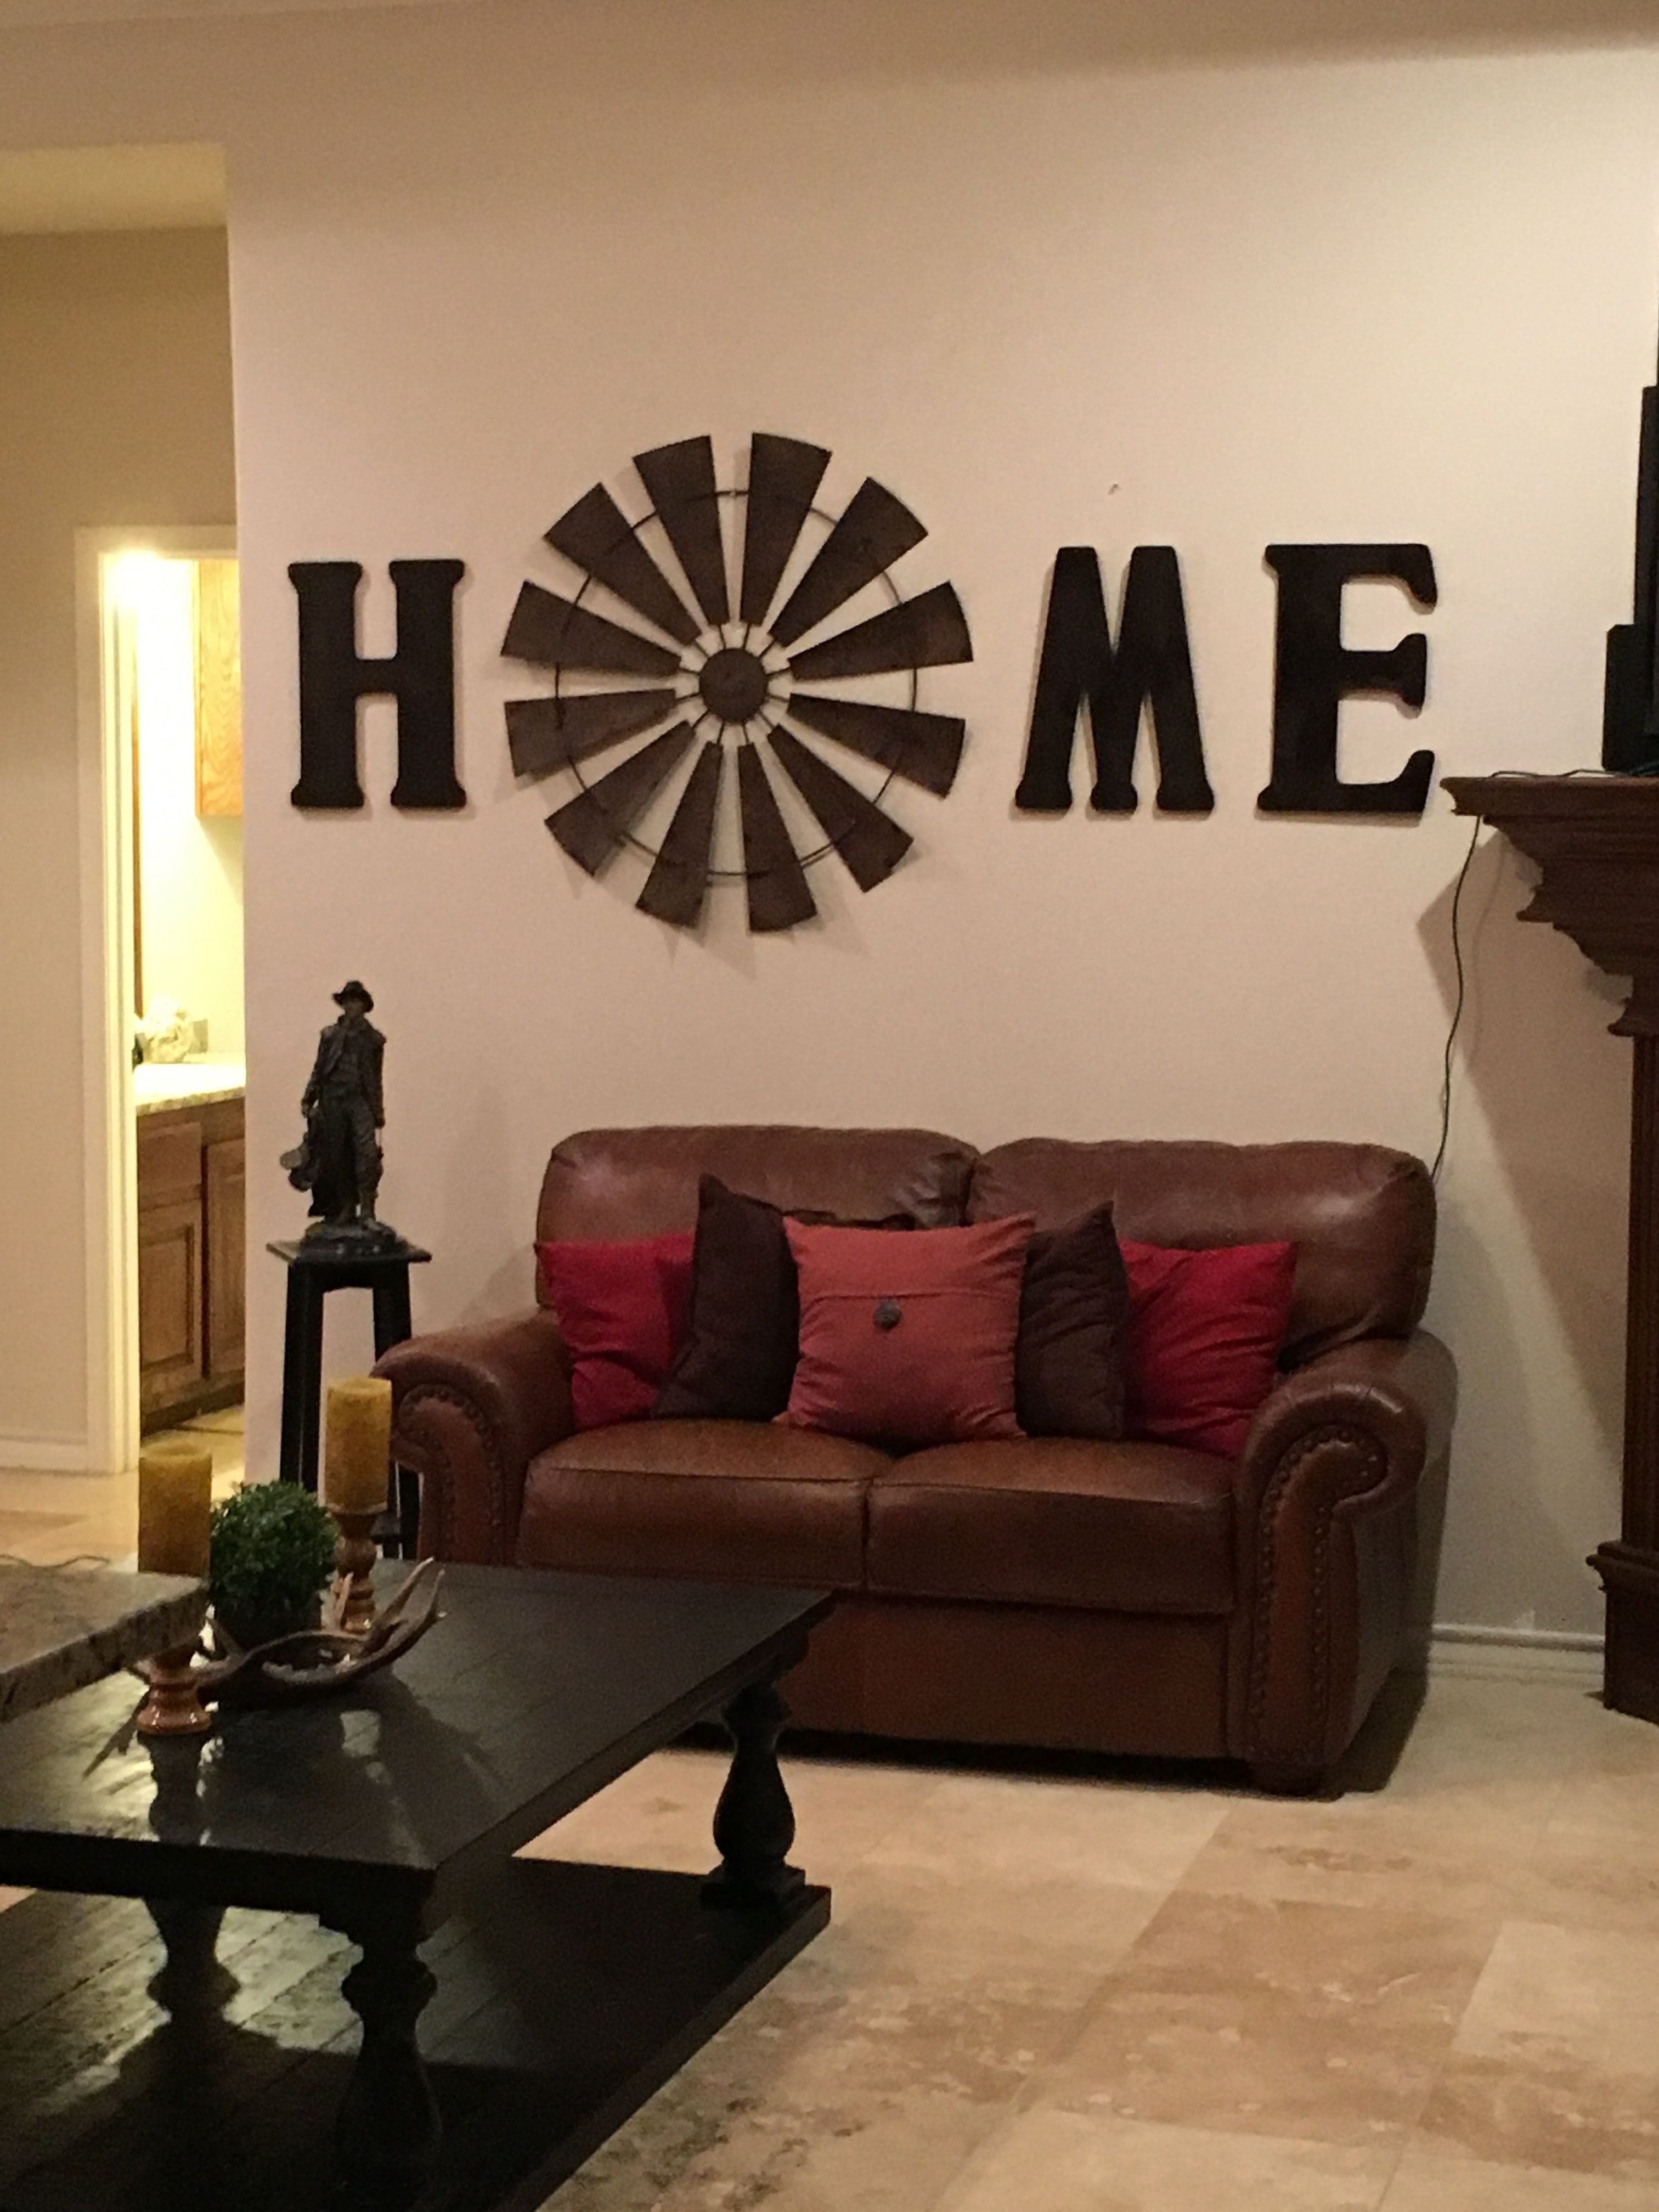 Windmill Wall Decor Home Living Room Inspiration Of Windmill Wall Intended For 2018 Windmill Wall Art (View 3 of 20)